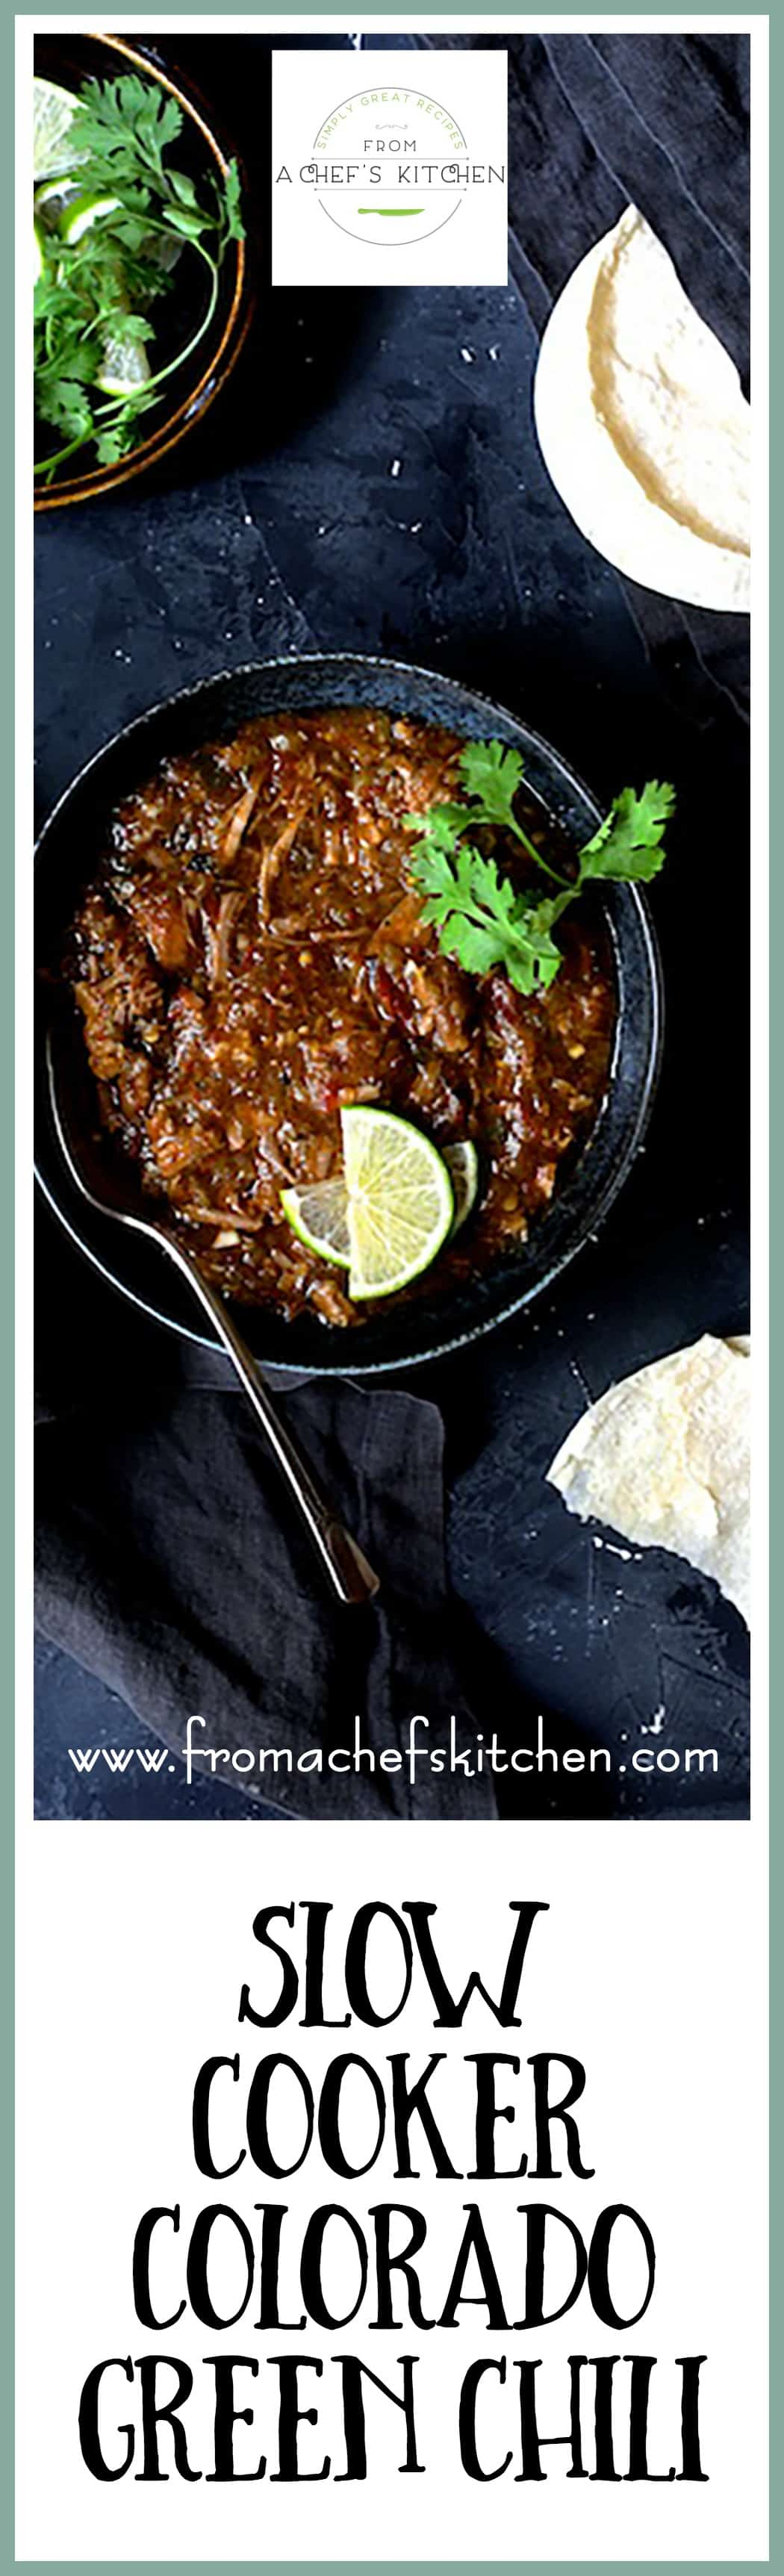 Slow Cooker Colorado Green Chili From A Chef S Kitchen